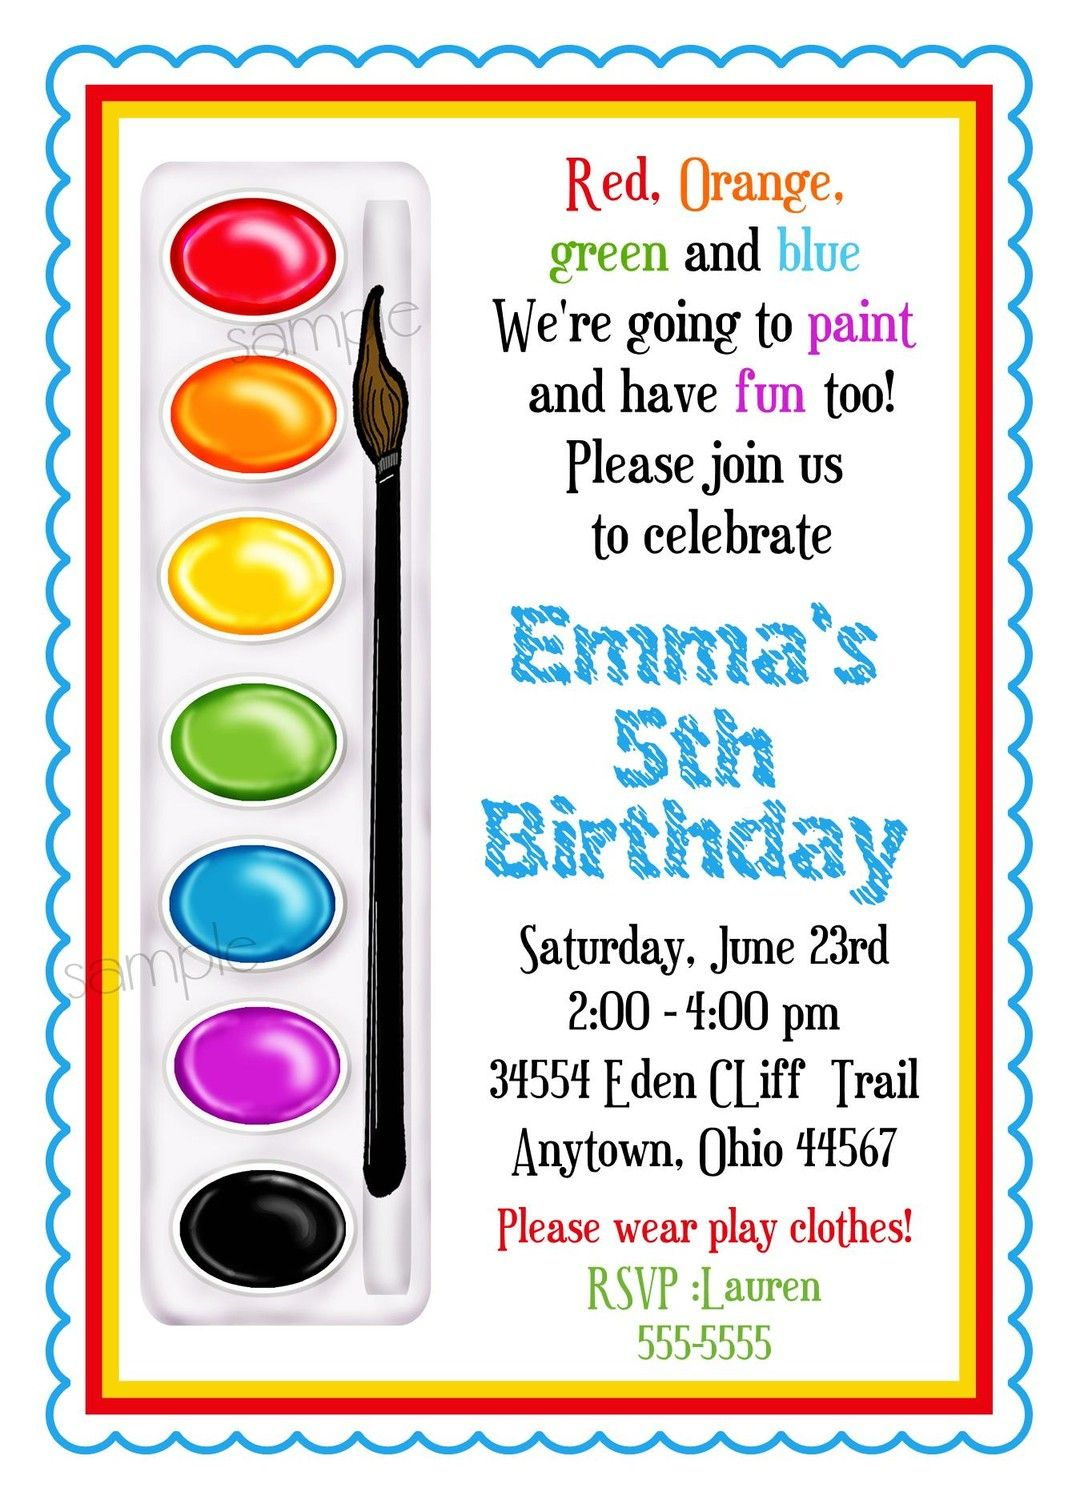 Art invitations painting party birthday party paint box paint art invitations painting party birthday party paint box paint pallette crafts birthday boygirl party favor stickers 159 via etsy stopboris Choice Image